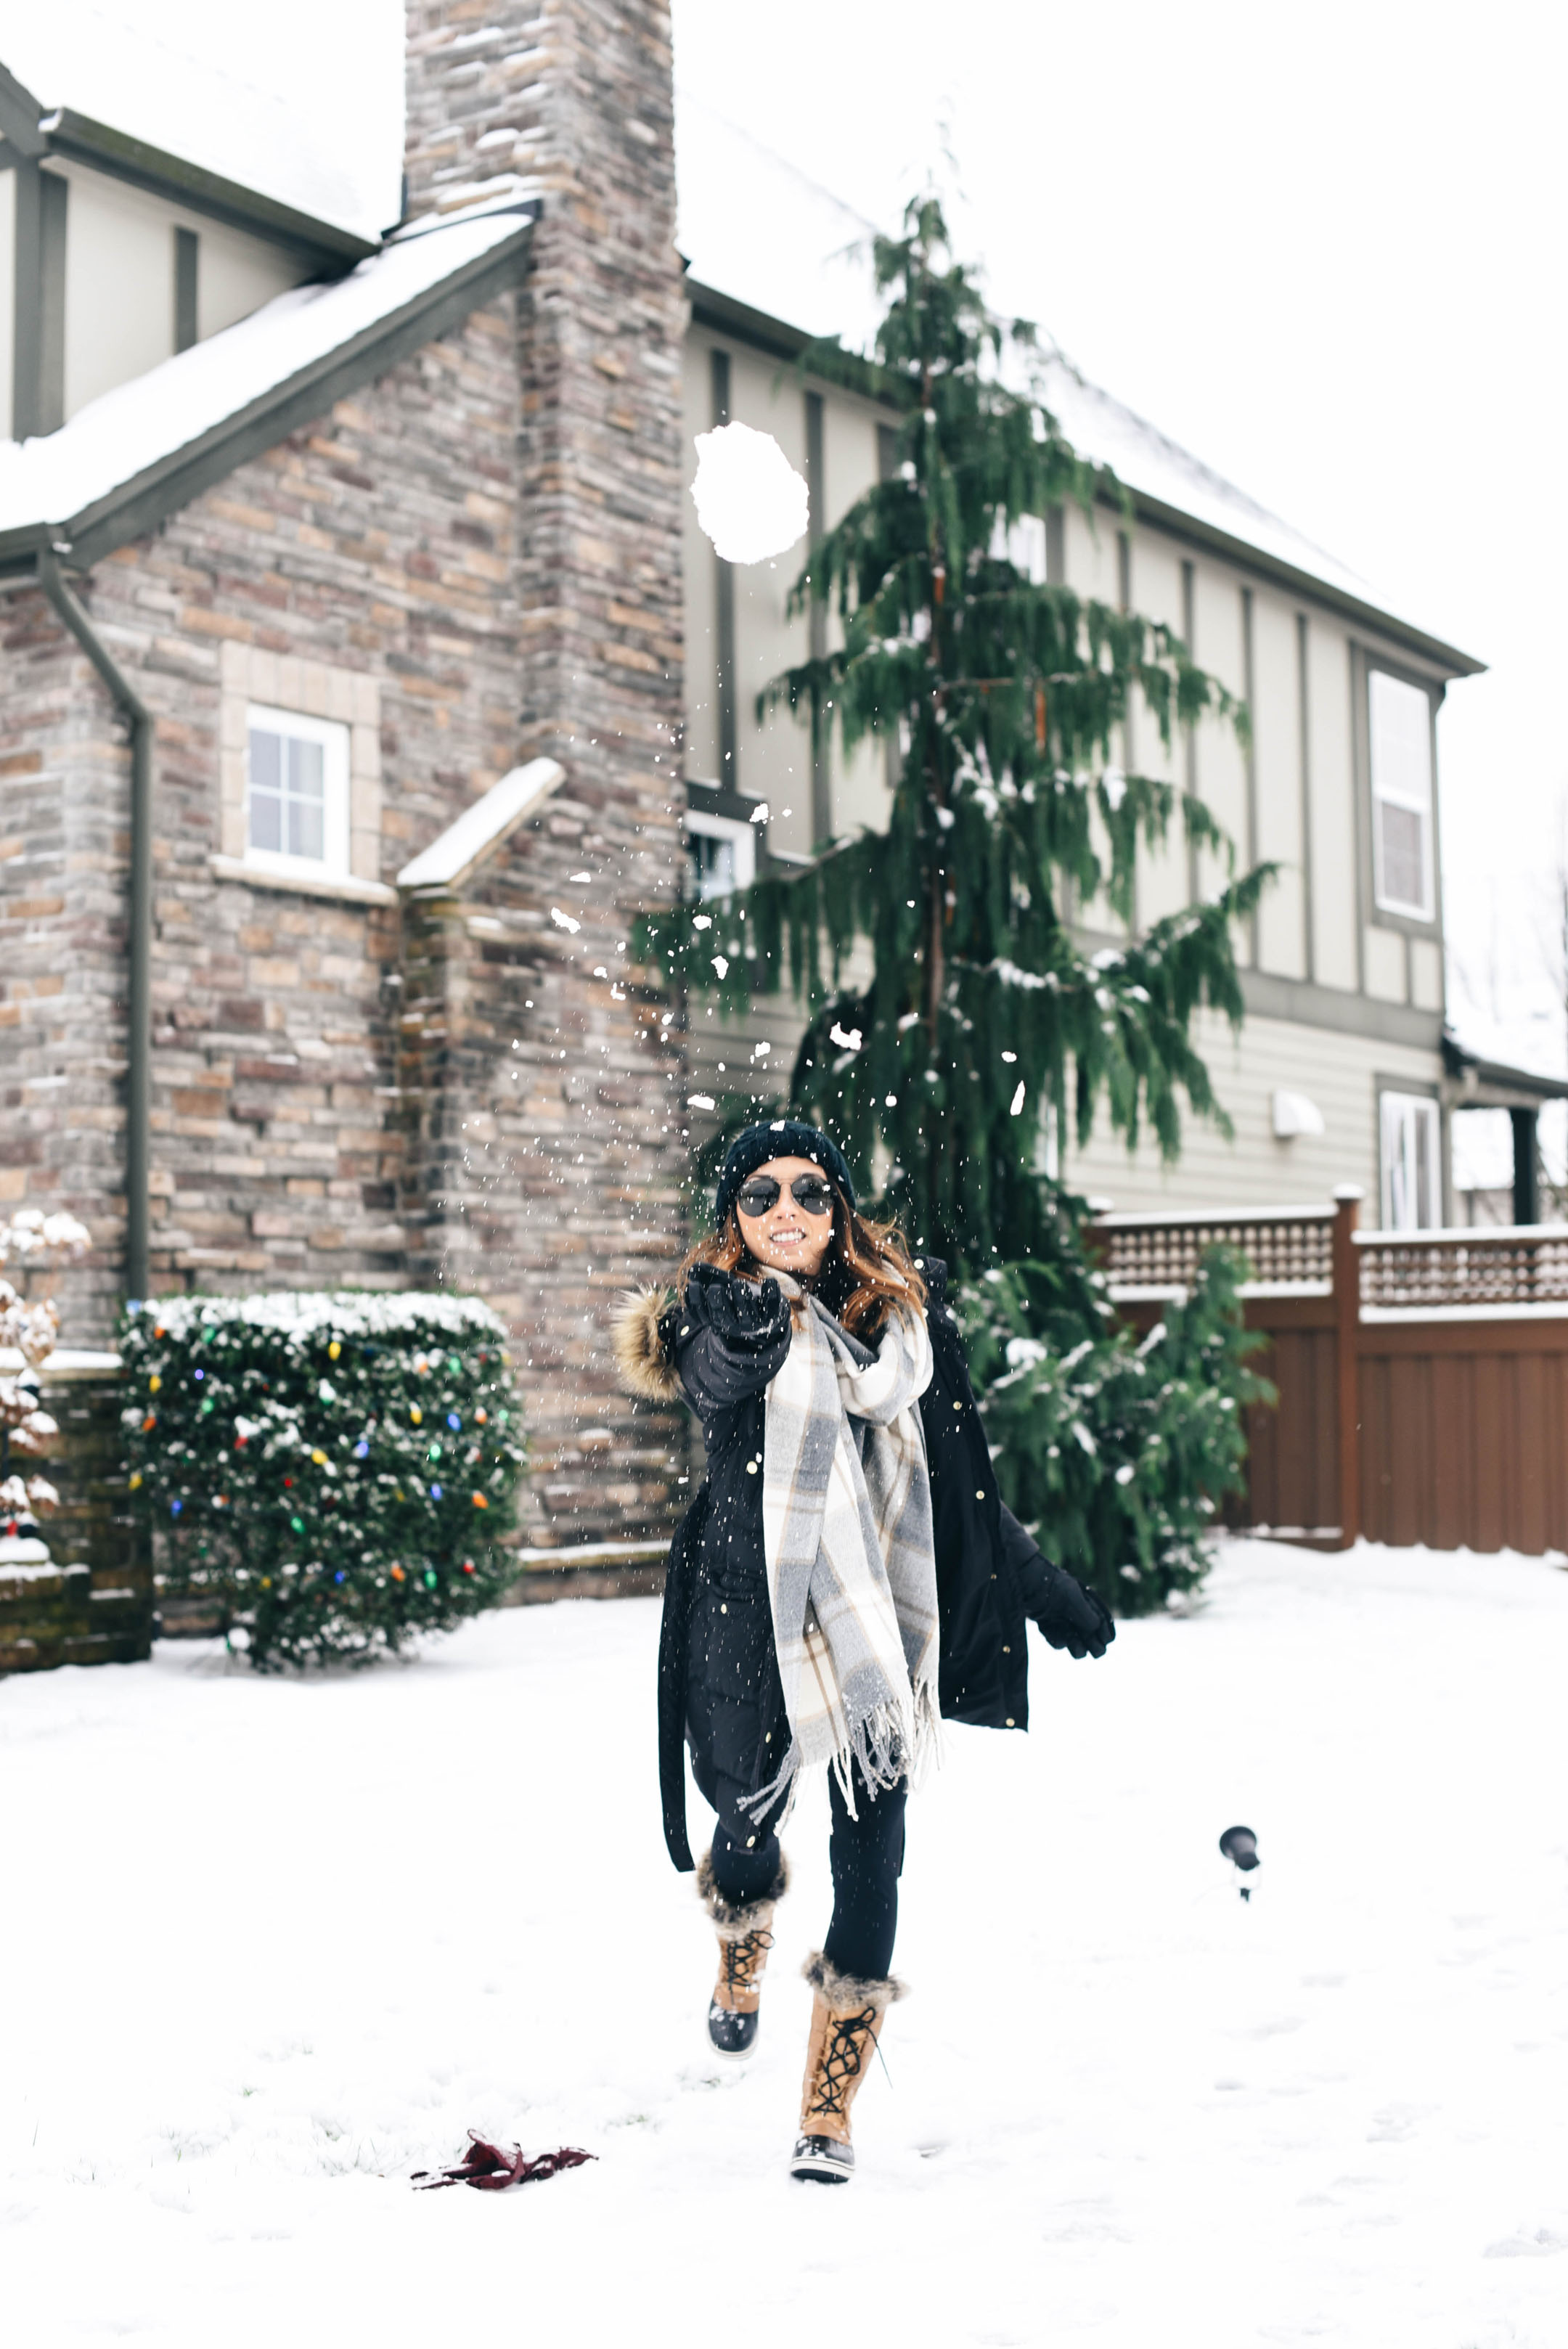 crystalin-marie-snow-outfit